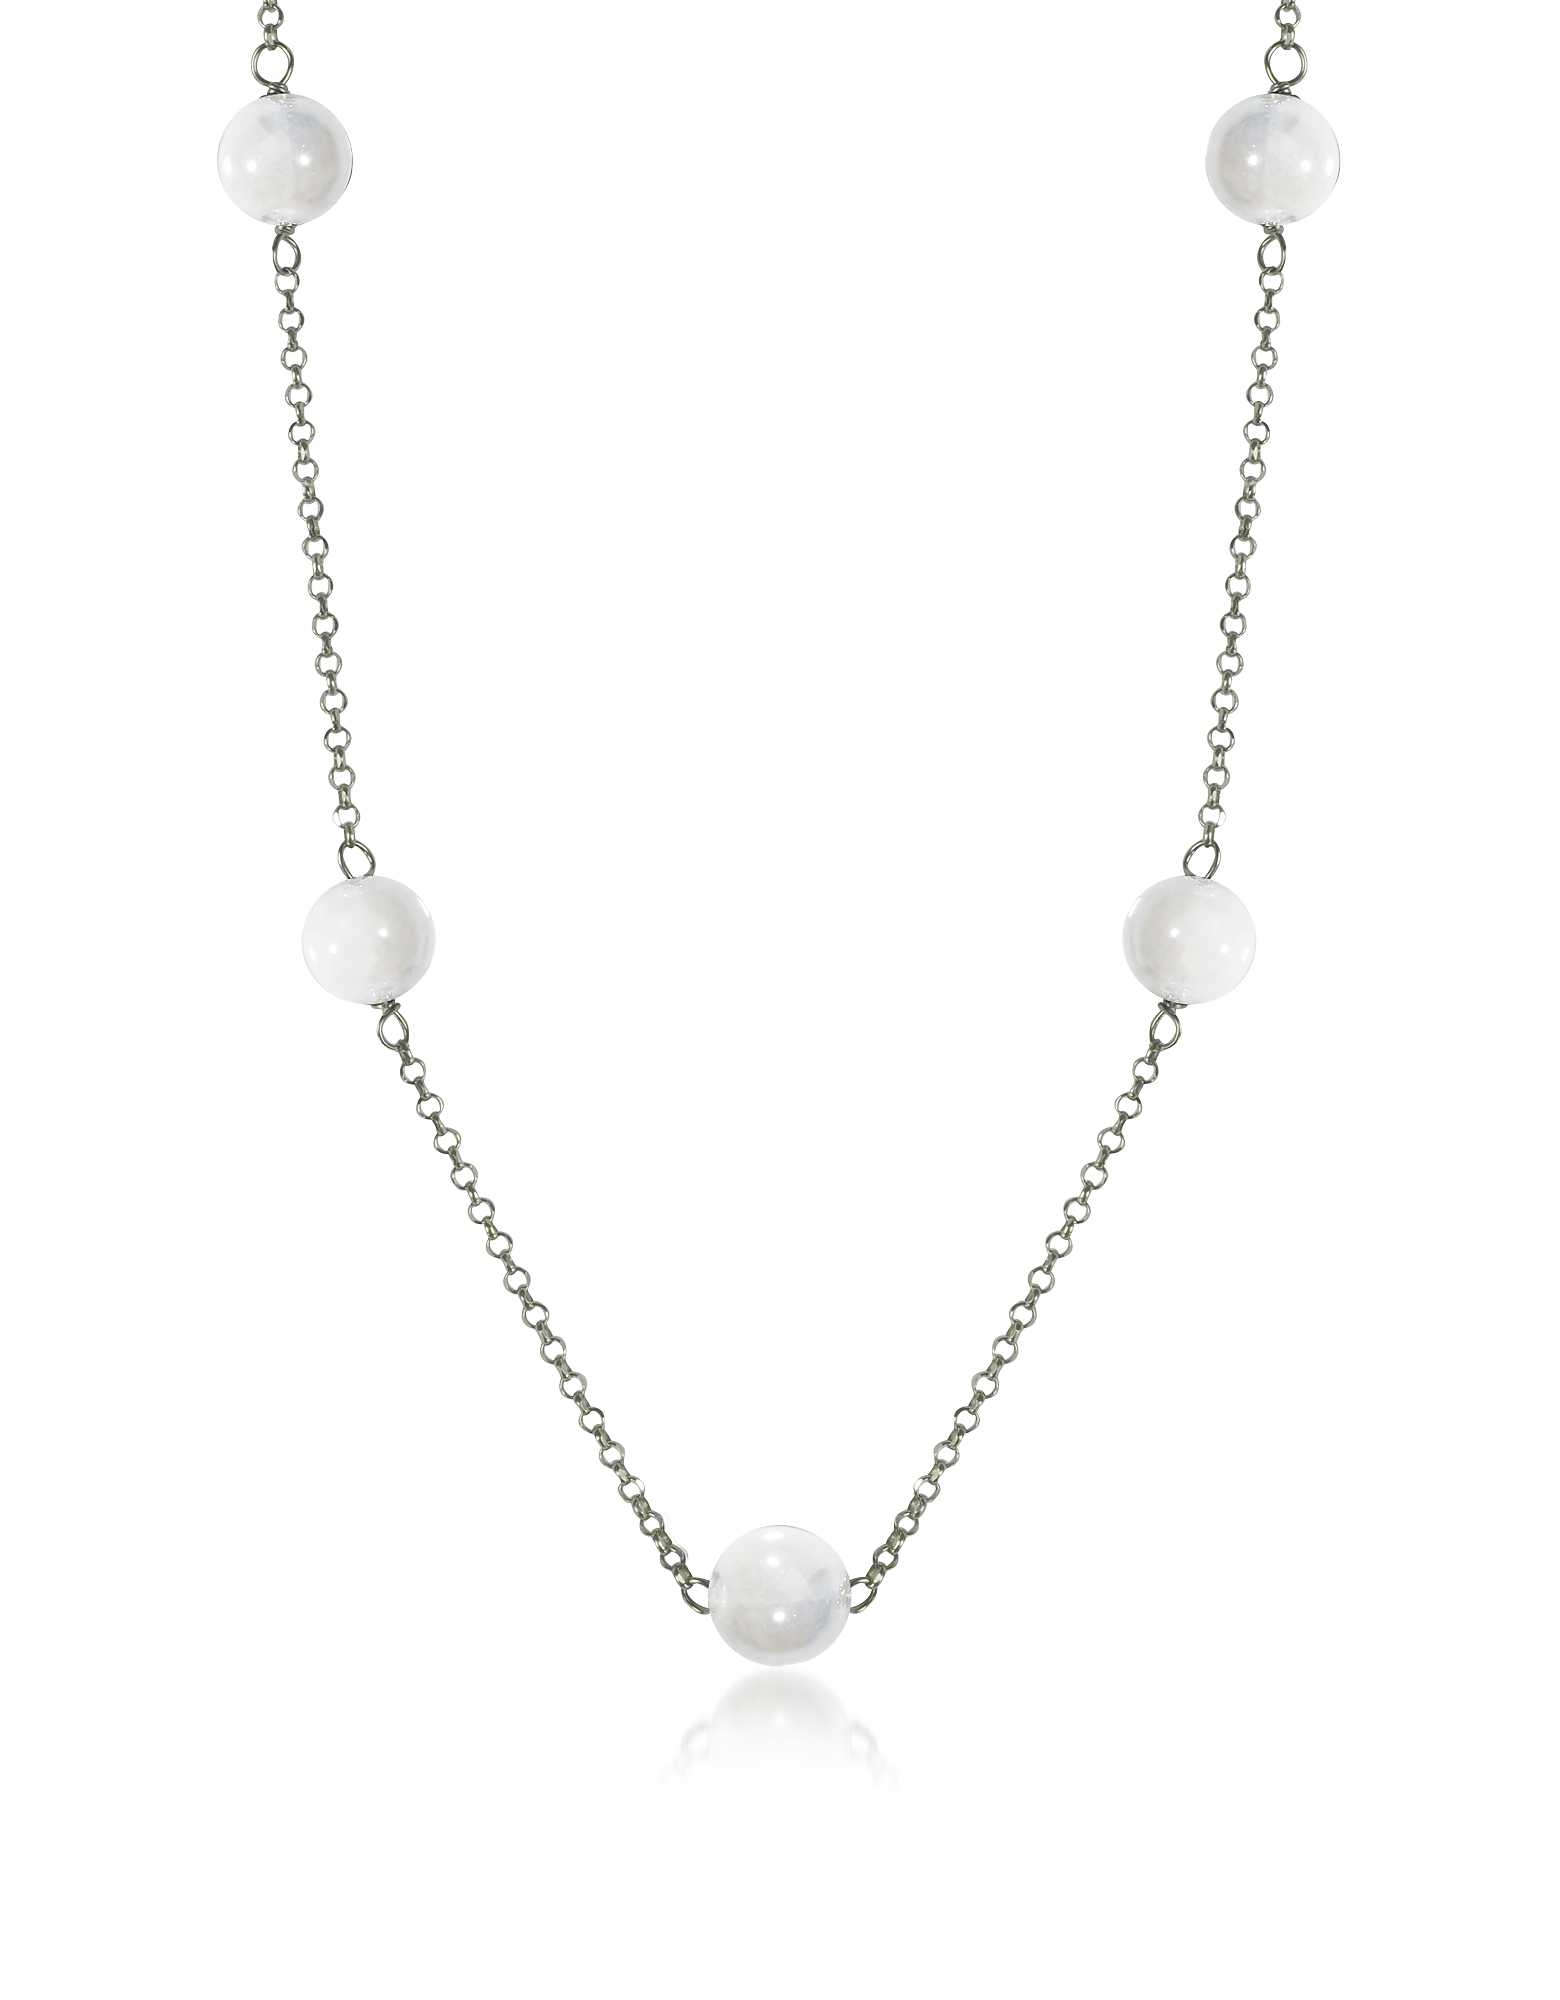 Antica Murrina Necklaces, Perleadi White Murano Glass Beads Necklace